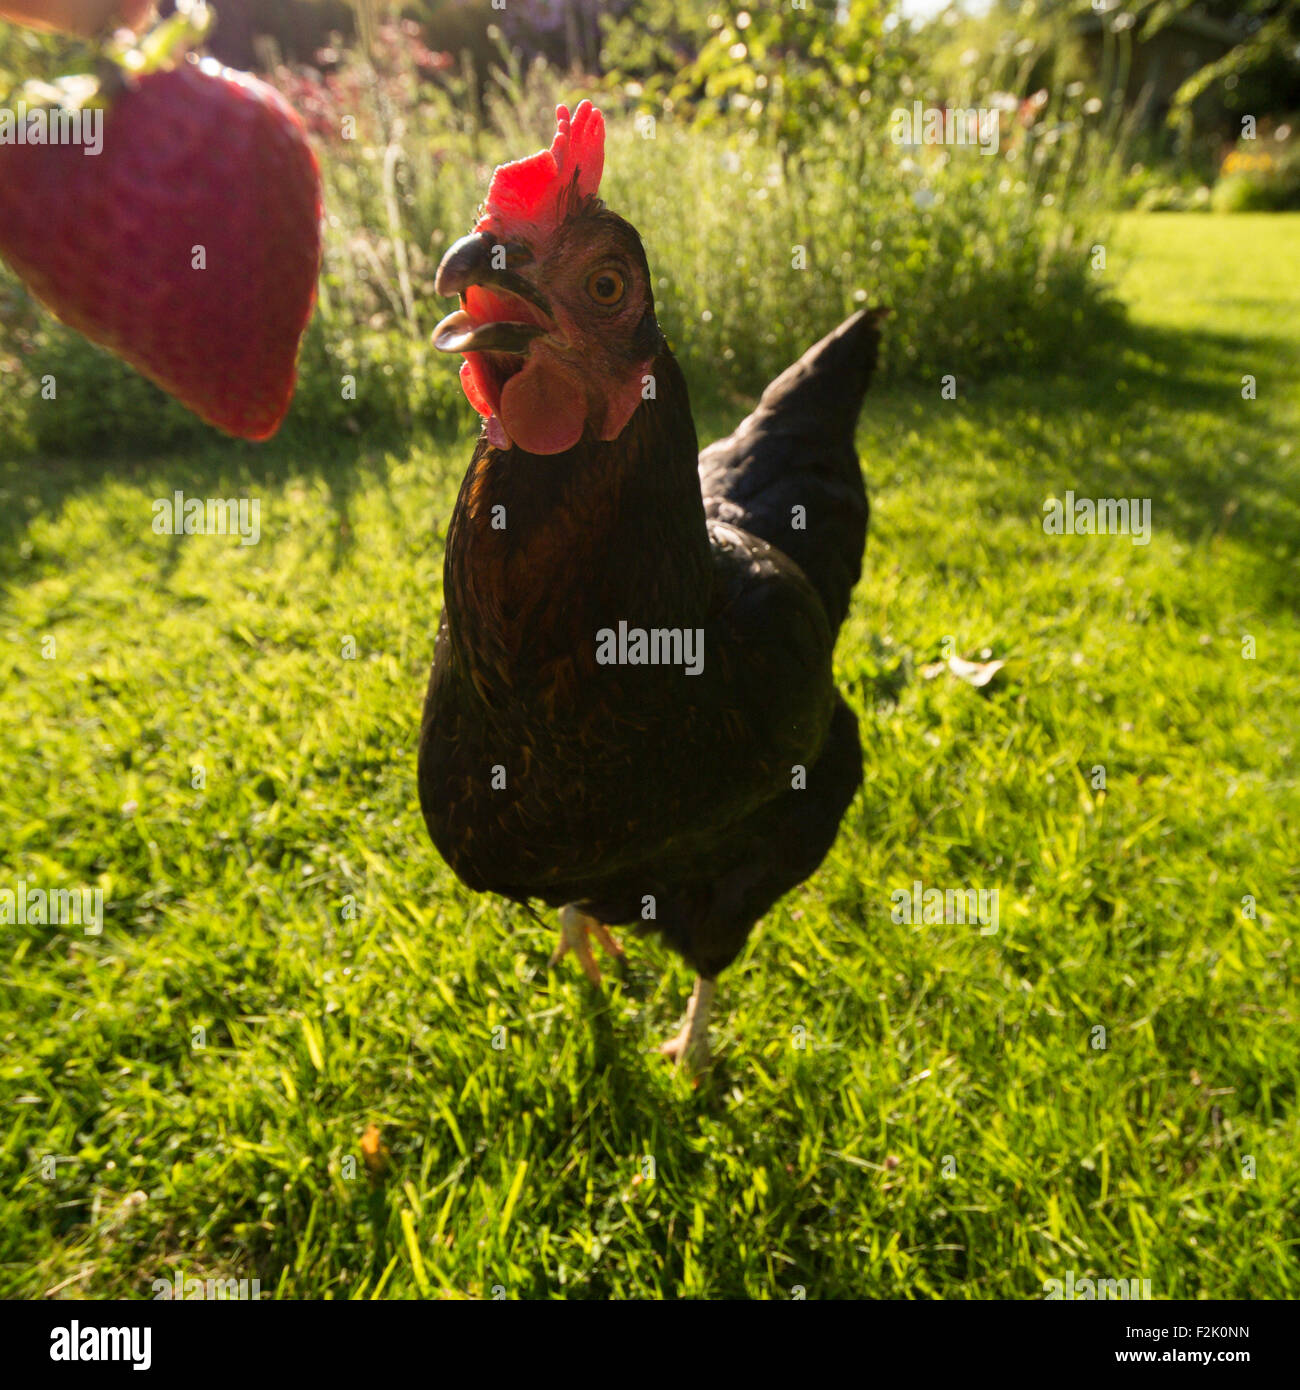 funny close up wide angle portrait of black pet chicken eating a strawberry in garden - Stock Image